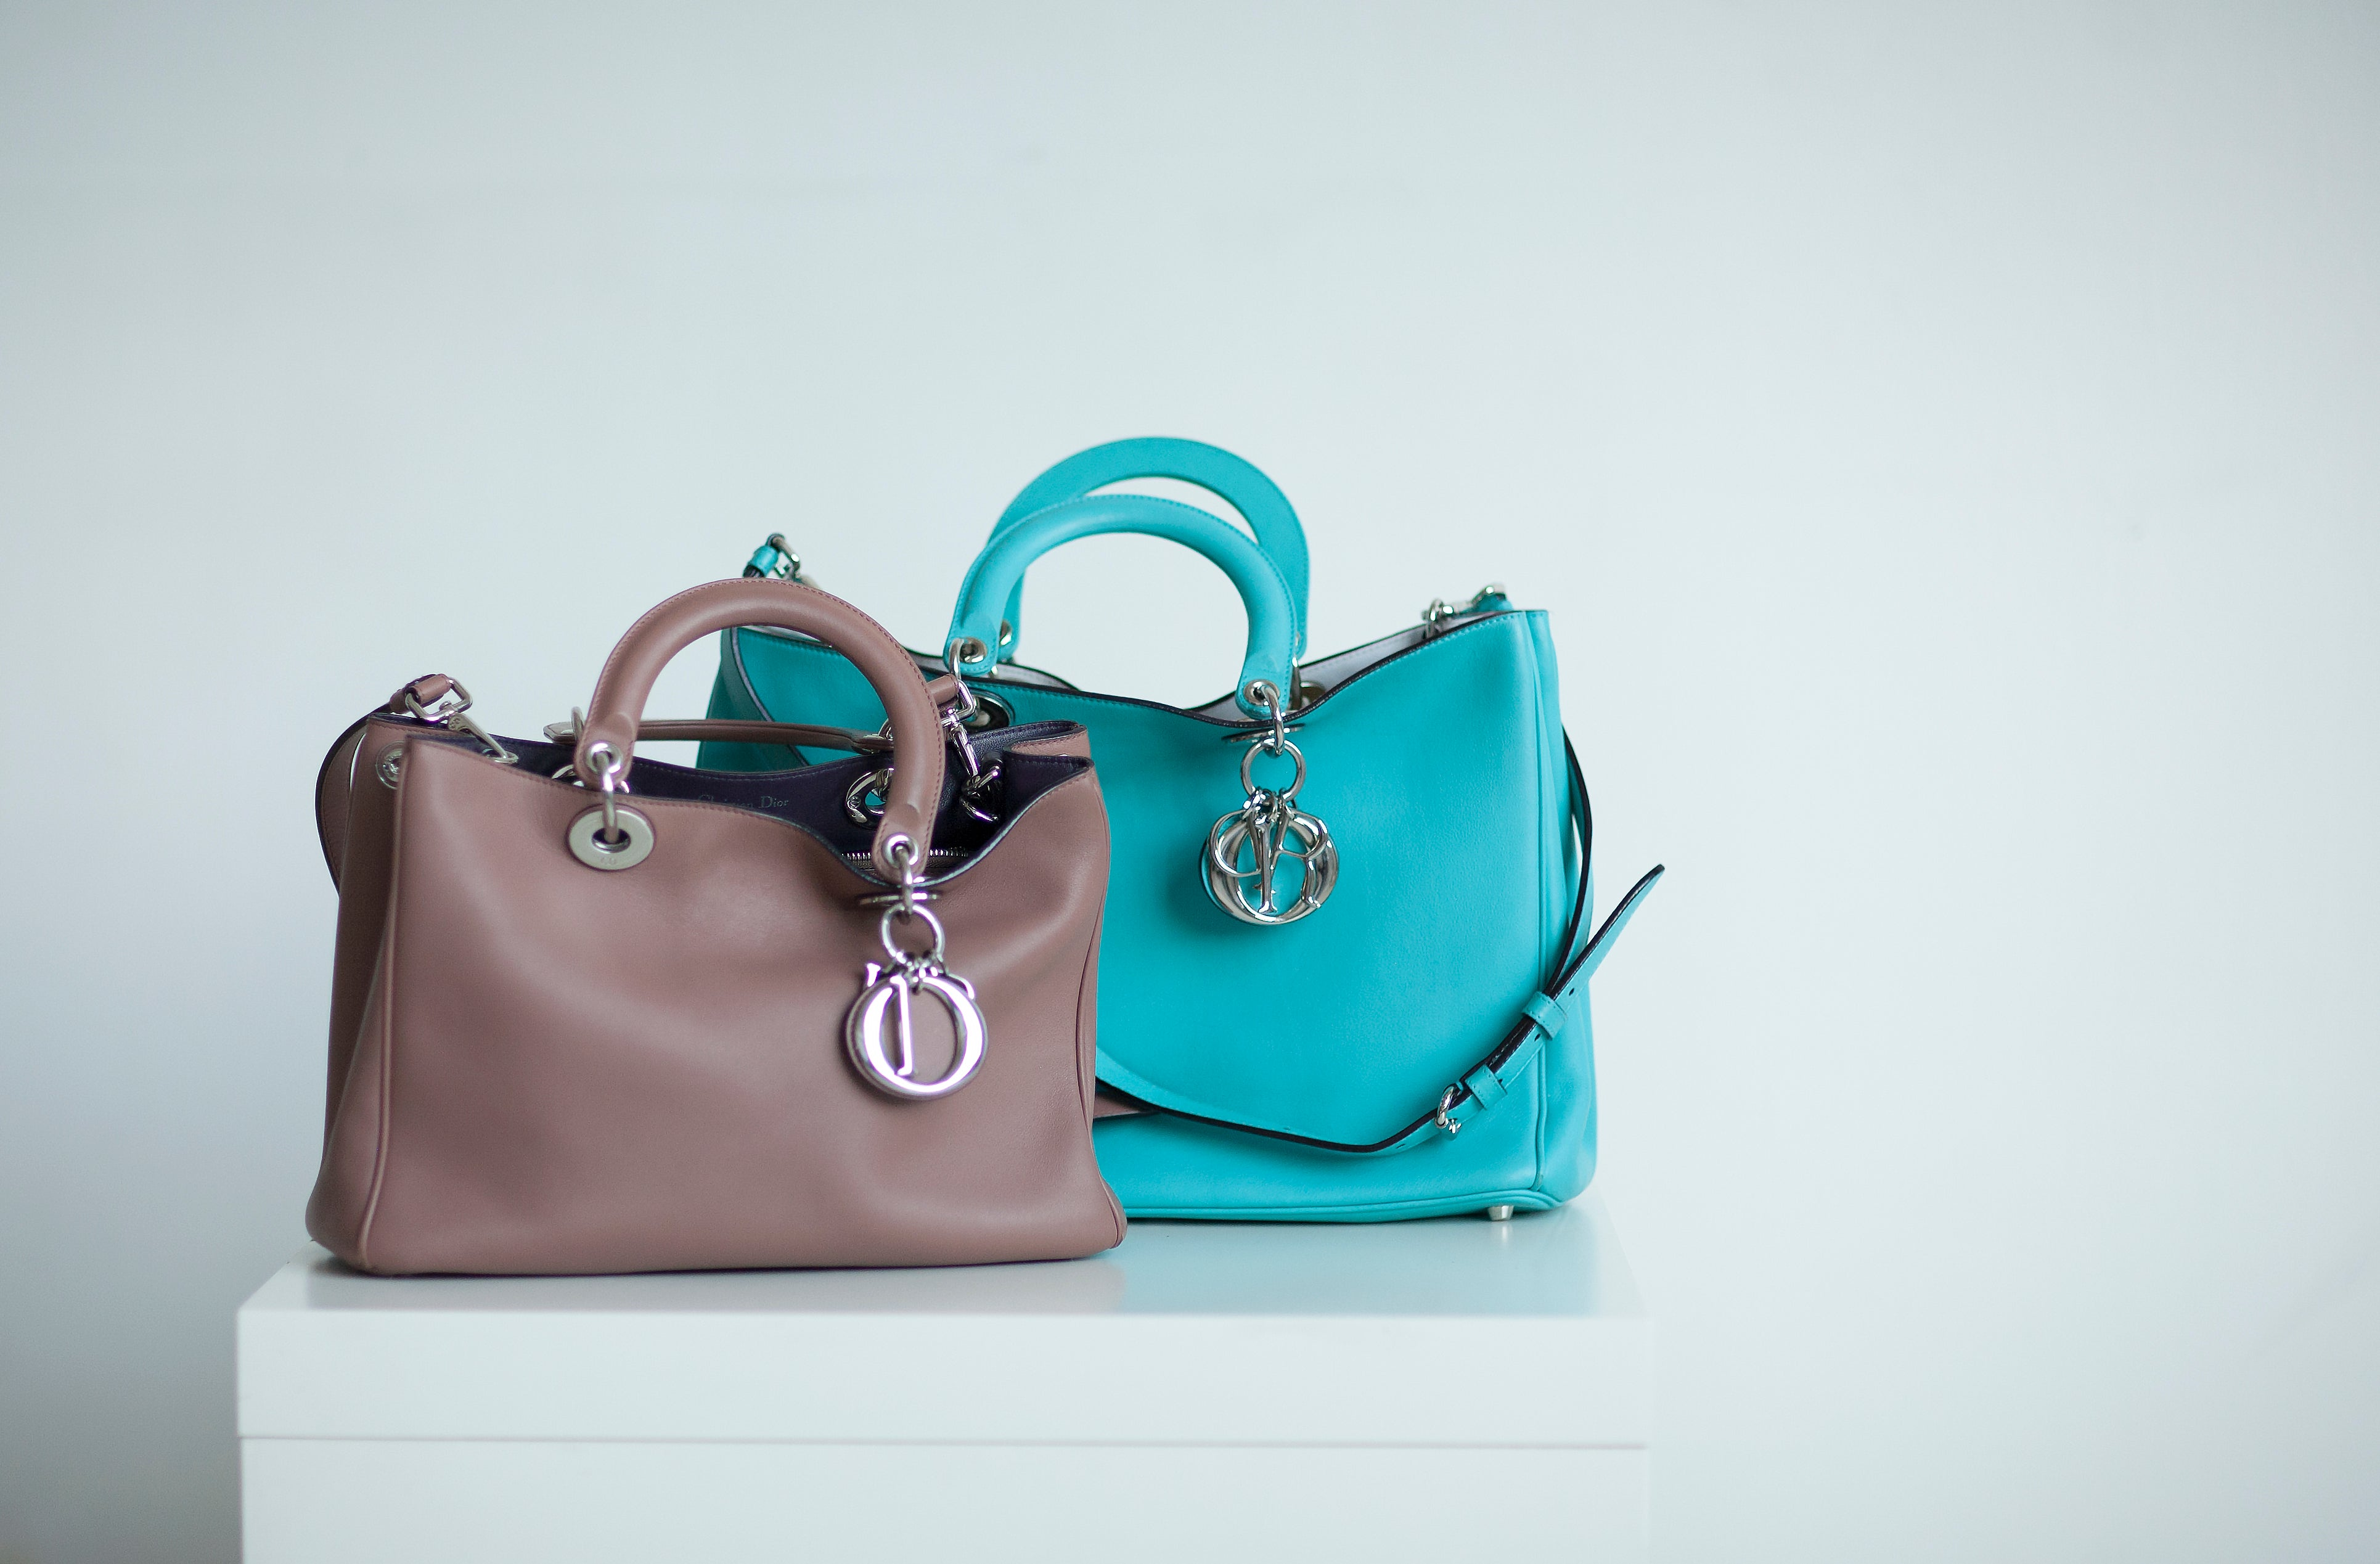 Ultimate Dior Leather Guide: What Are Dior Bags Made Of?